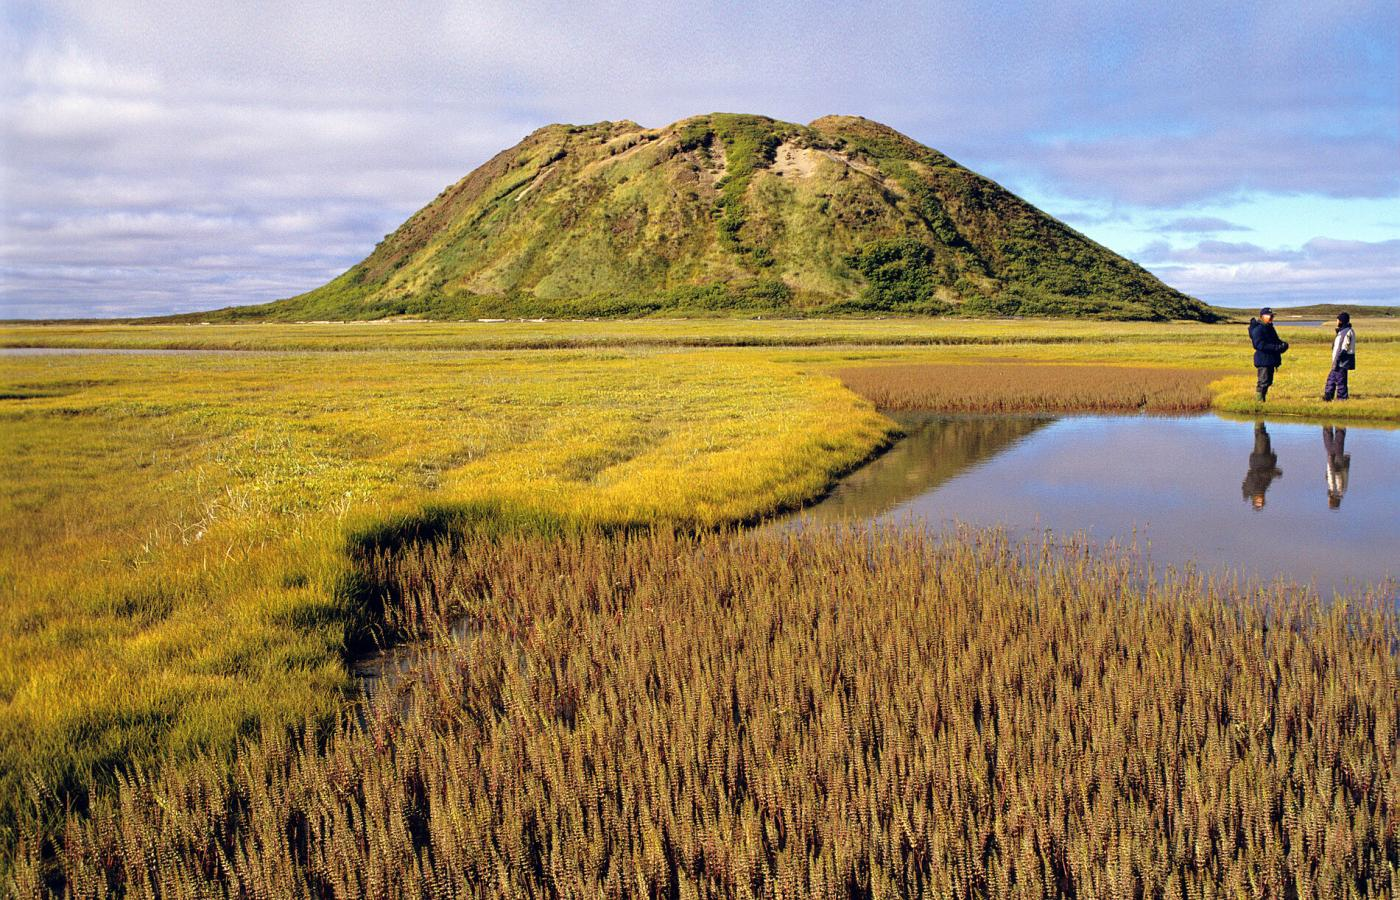 A pingo rises above the tundra landscape of the western Arctic